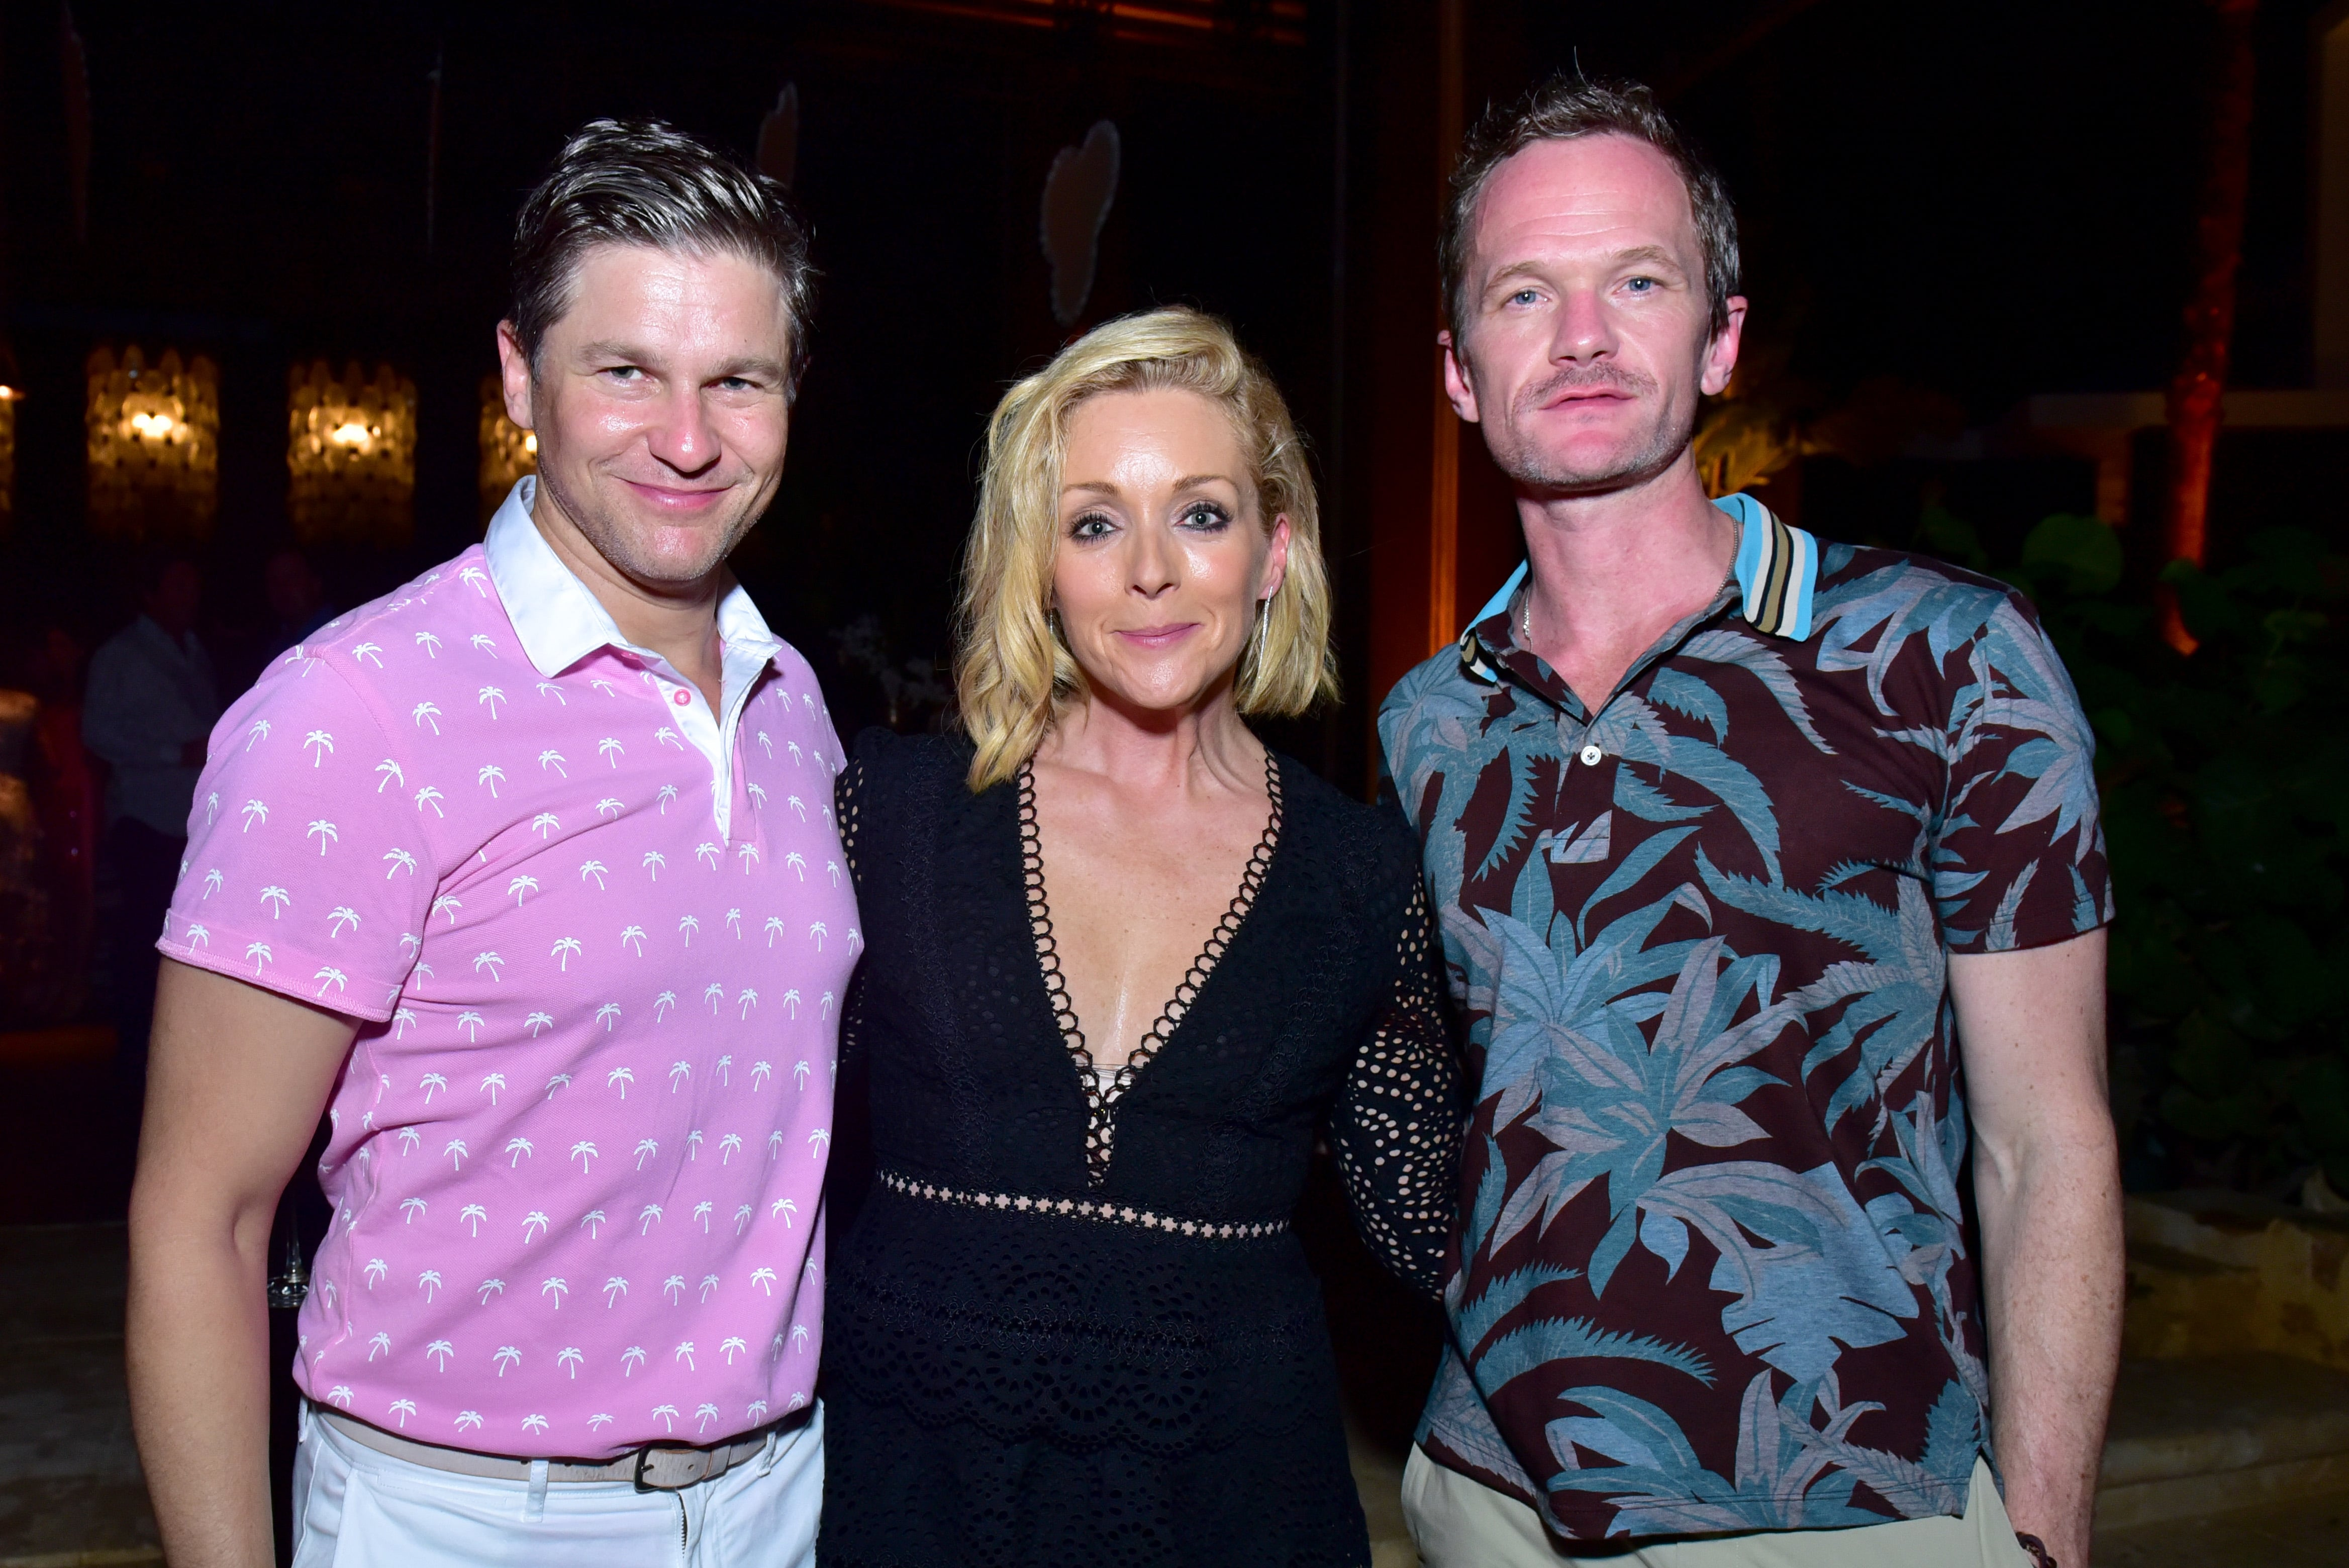 David_Burtka,_Jane_Krakowski,_and_Neil_Patrick_Harris.jpg